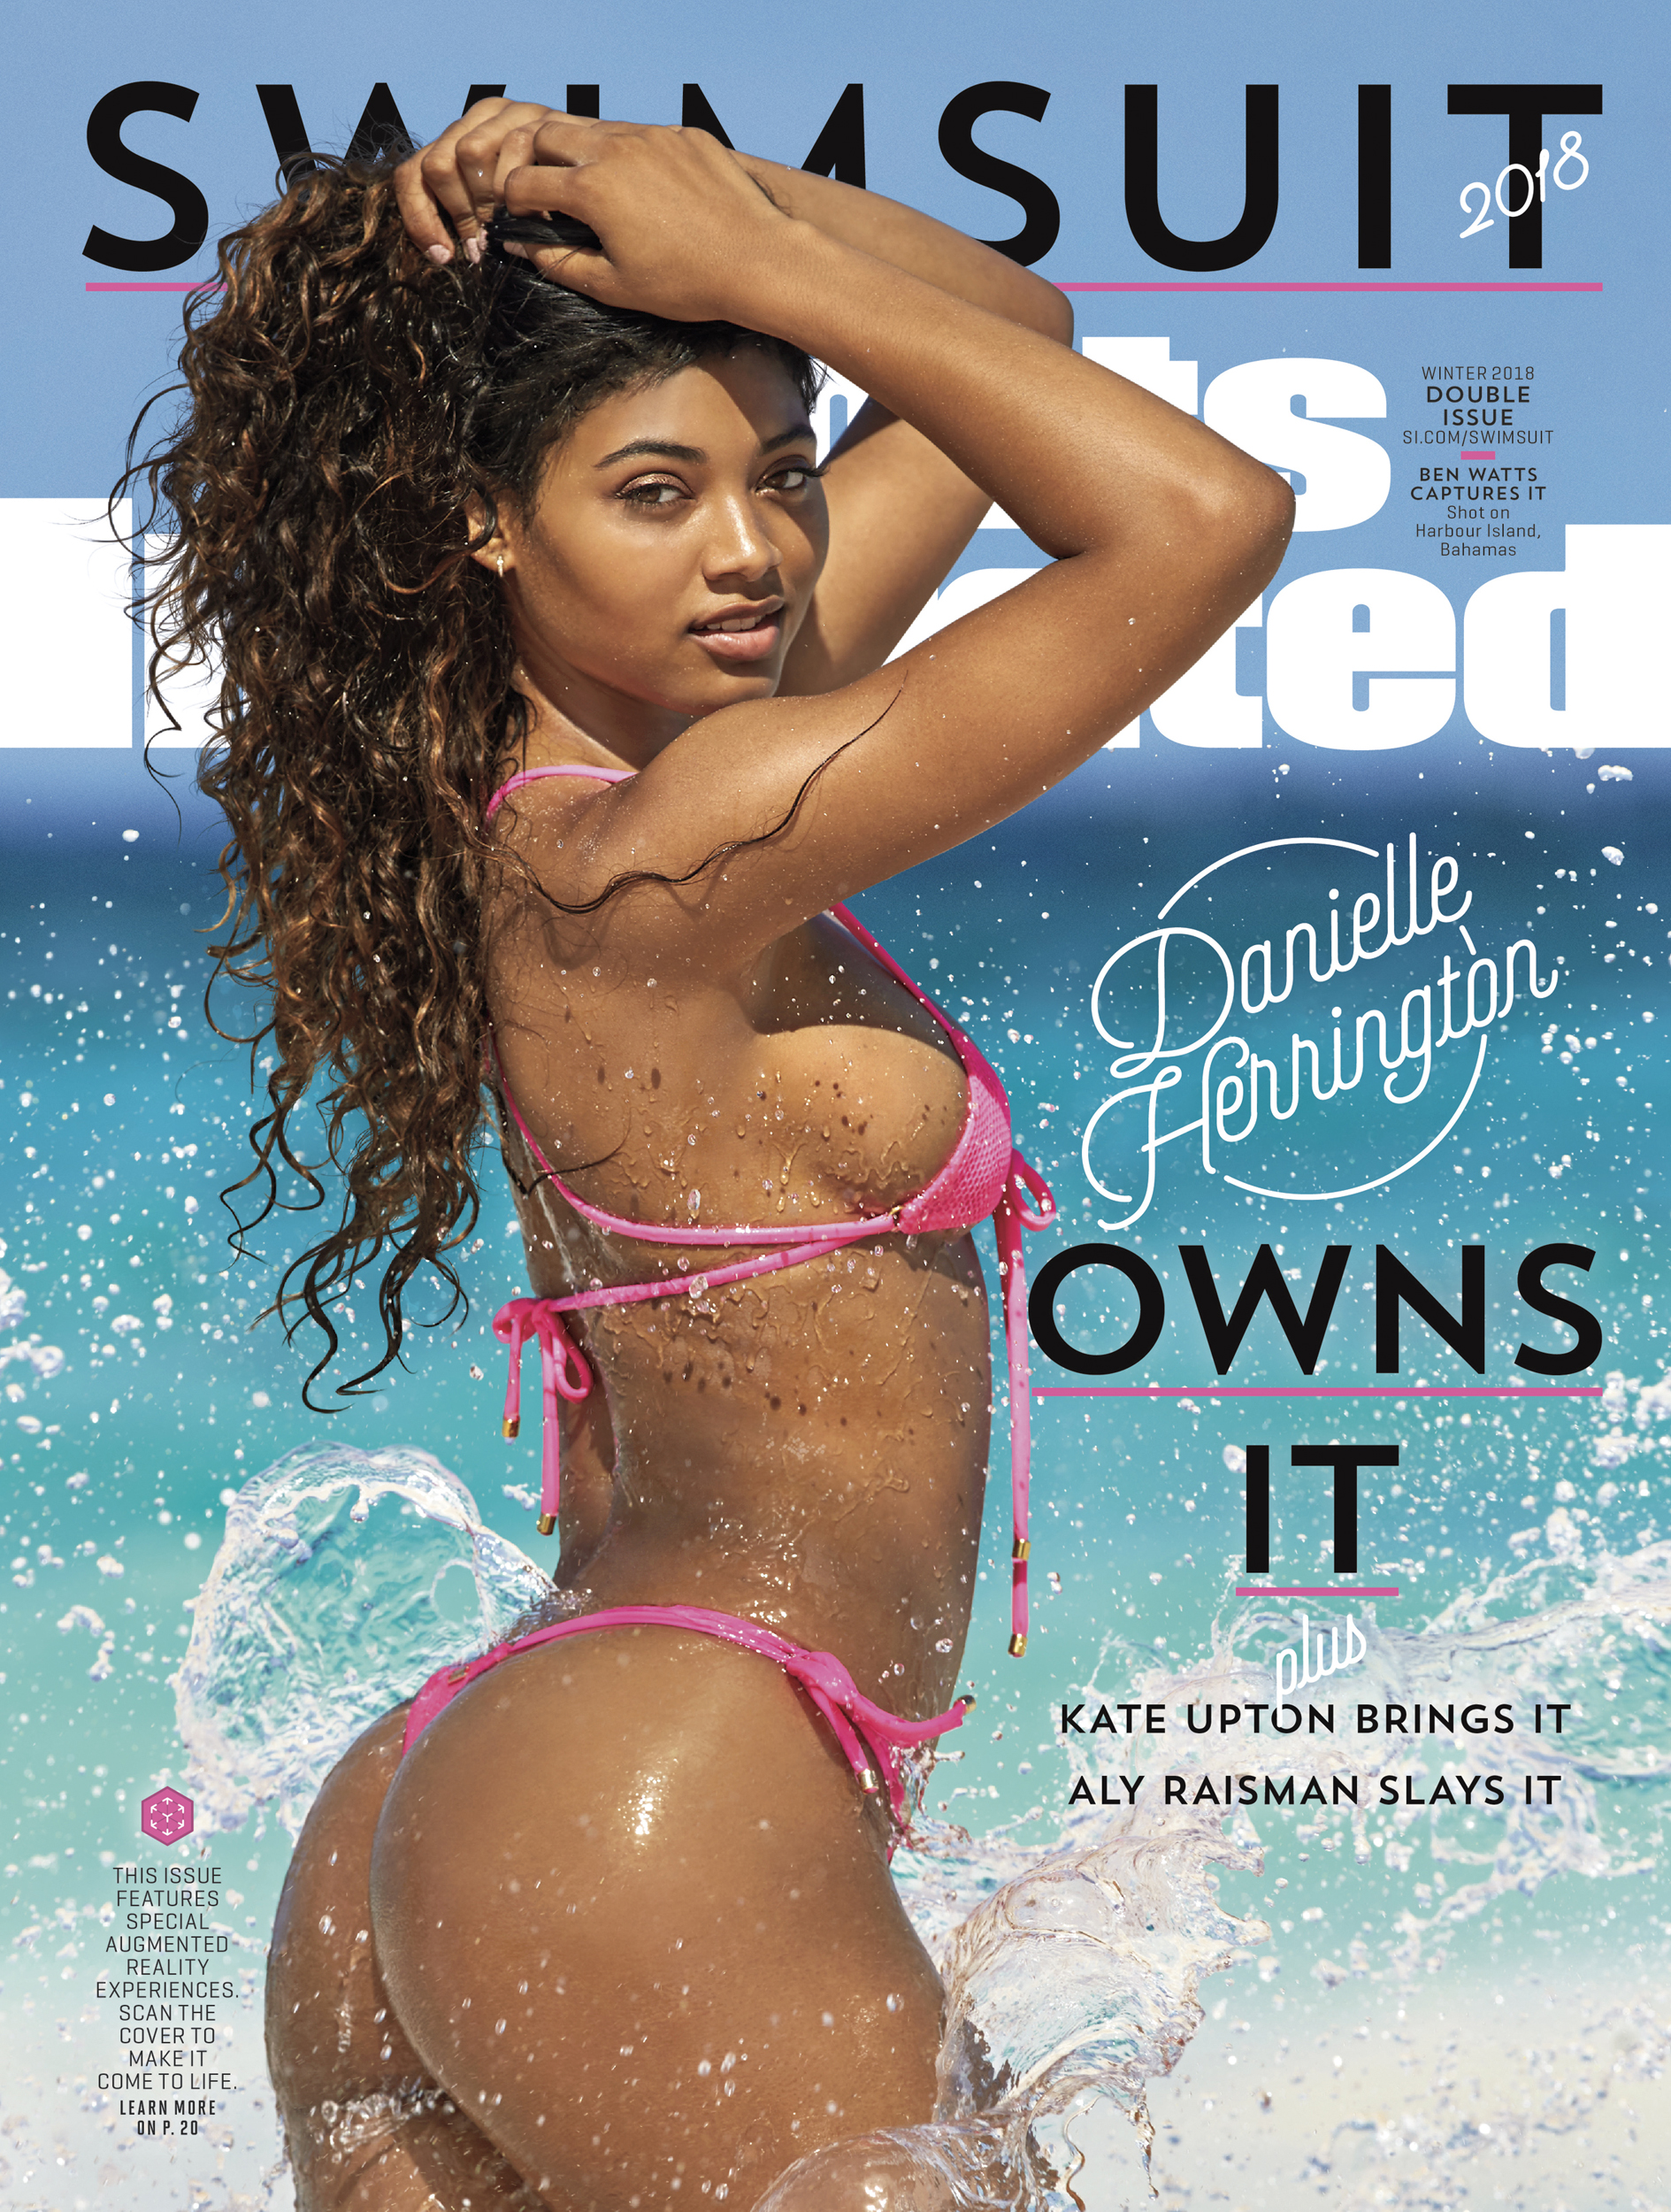 Sports Illustrated Swimsuit Issue Goes Metoo Not Everyone Is Happy